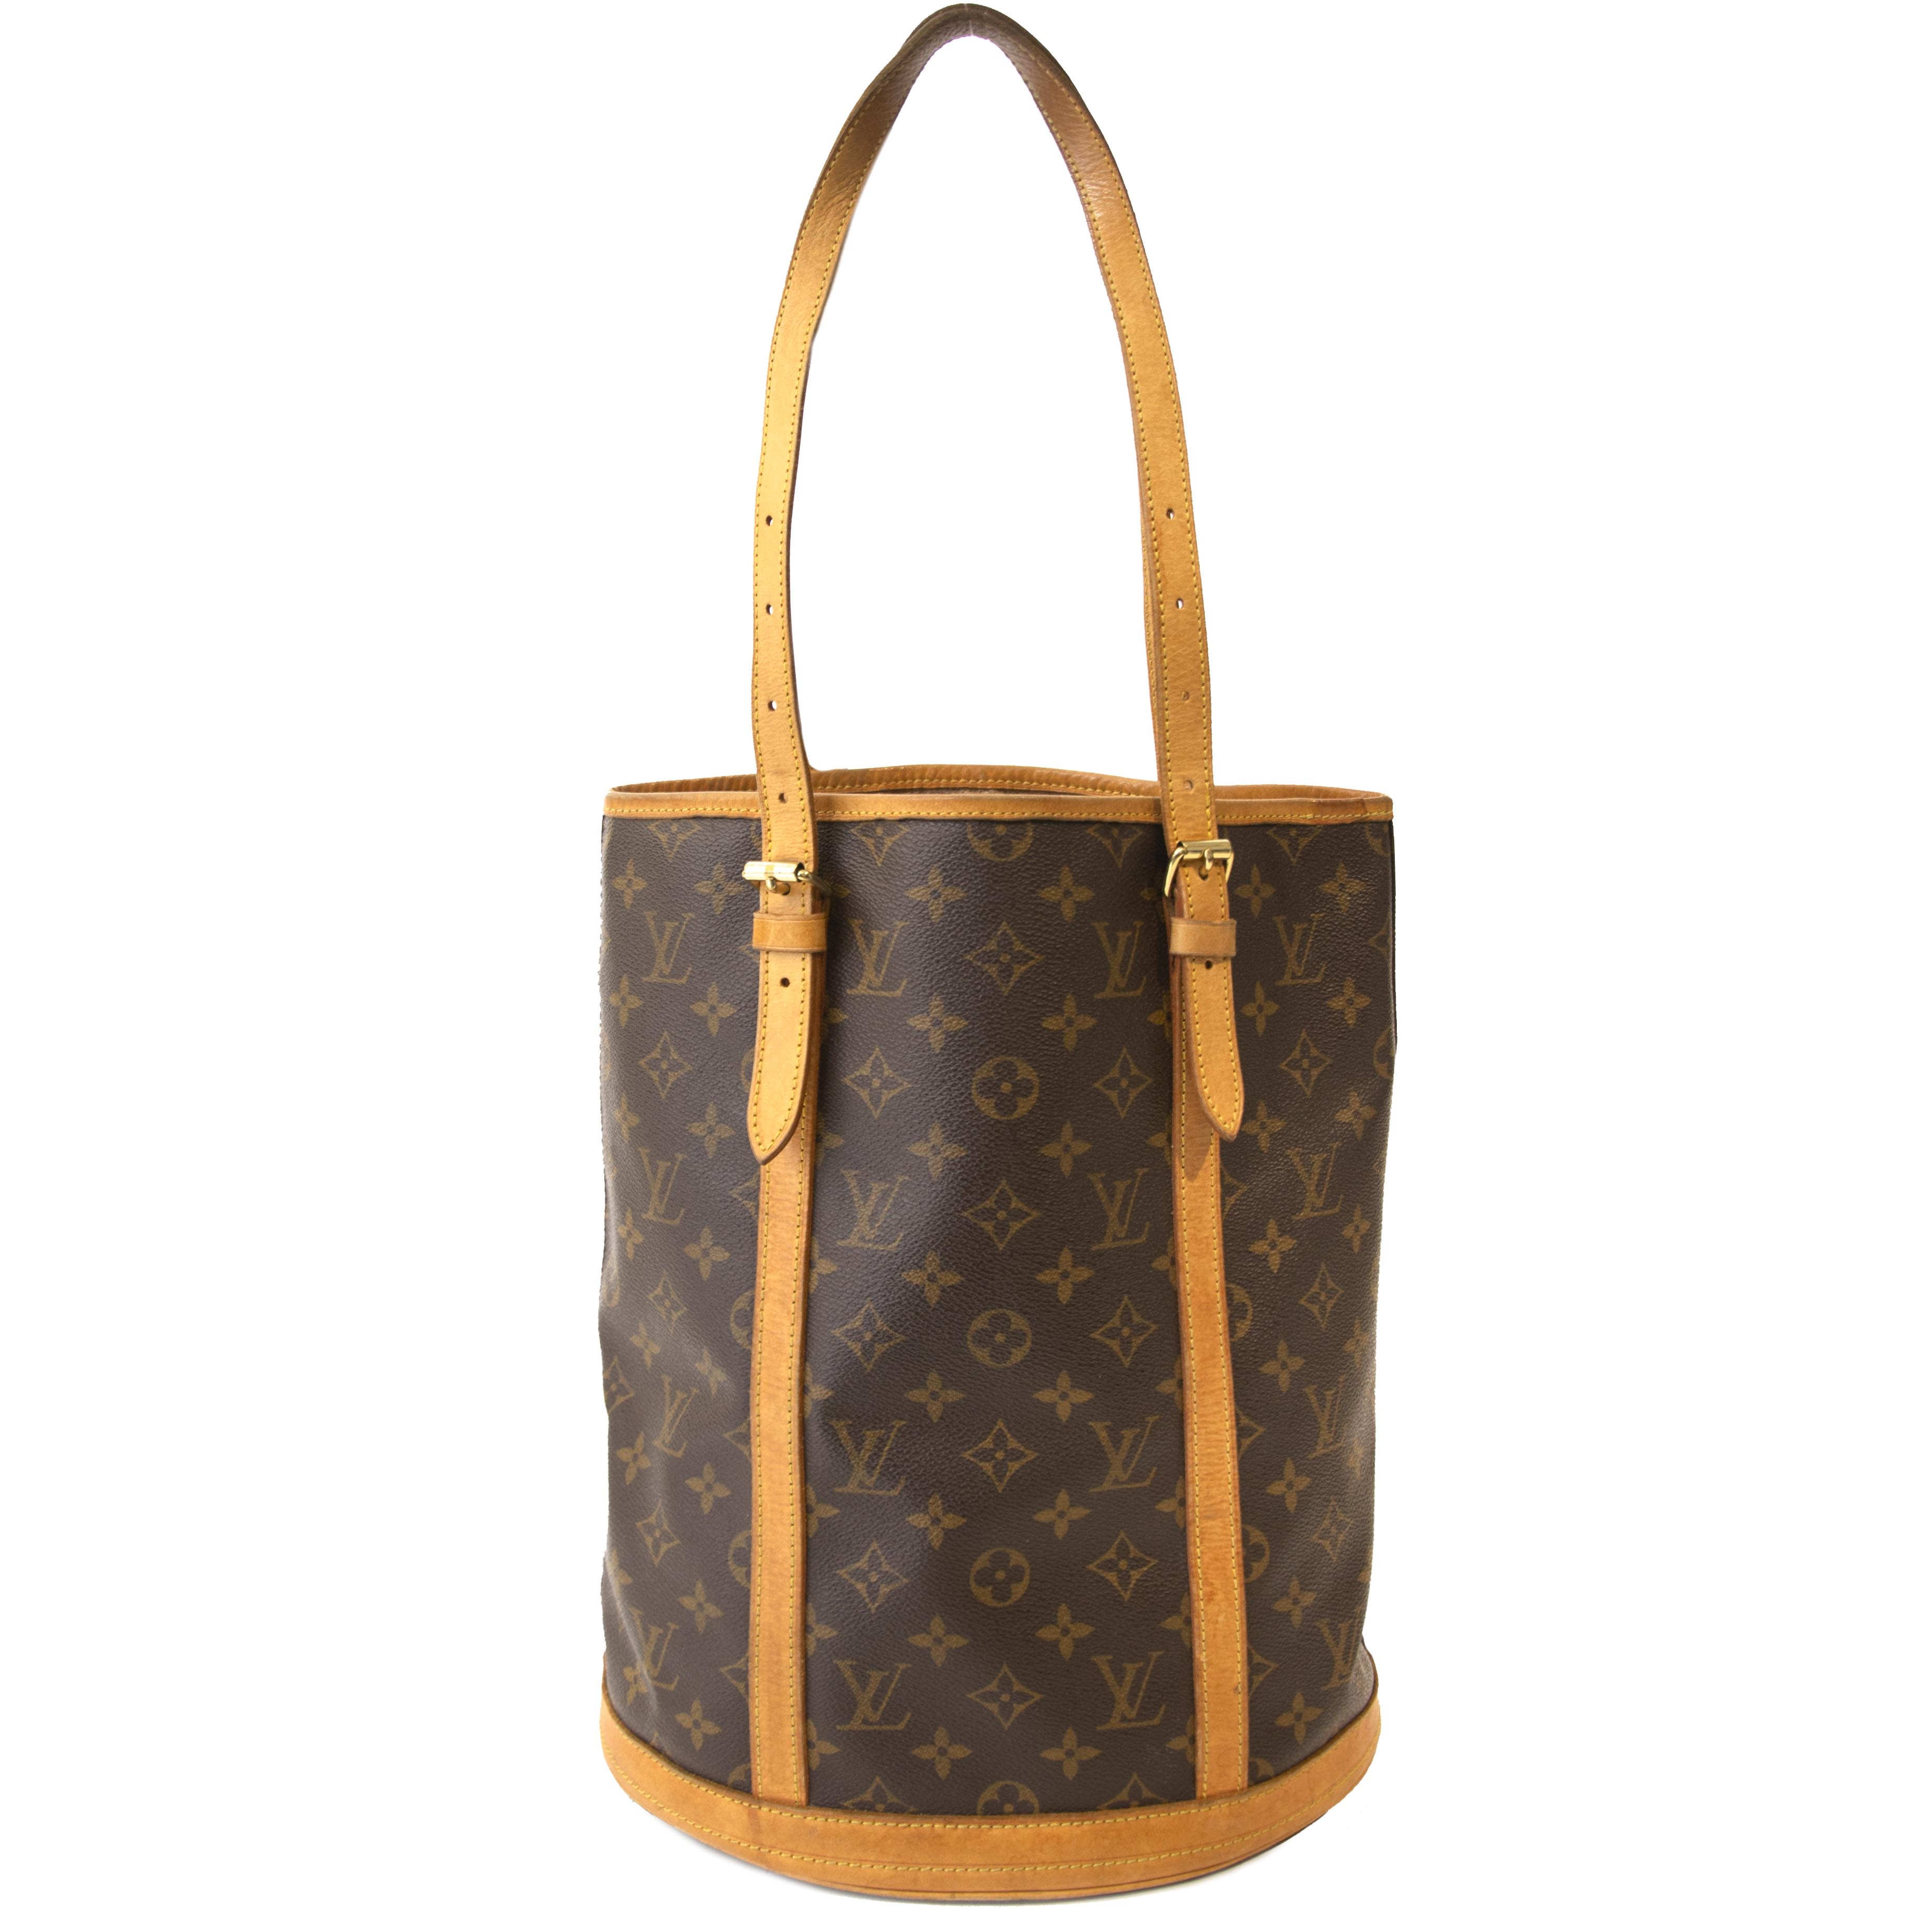 dd5c5aa708392 ... Authentic second hand vintage Louis Vuitton Bucket Tote Bag buy online  webshop LabelLOV